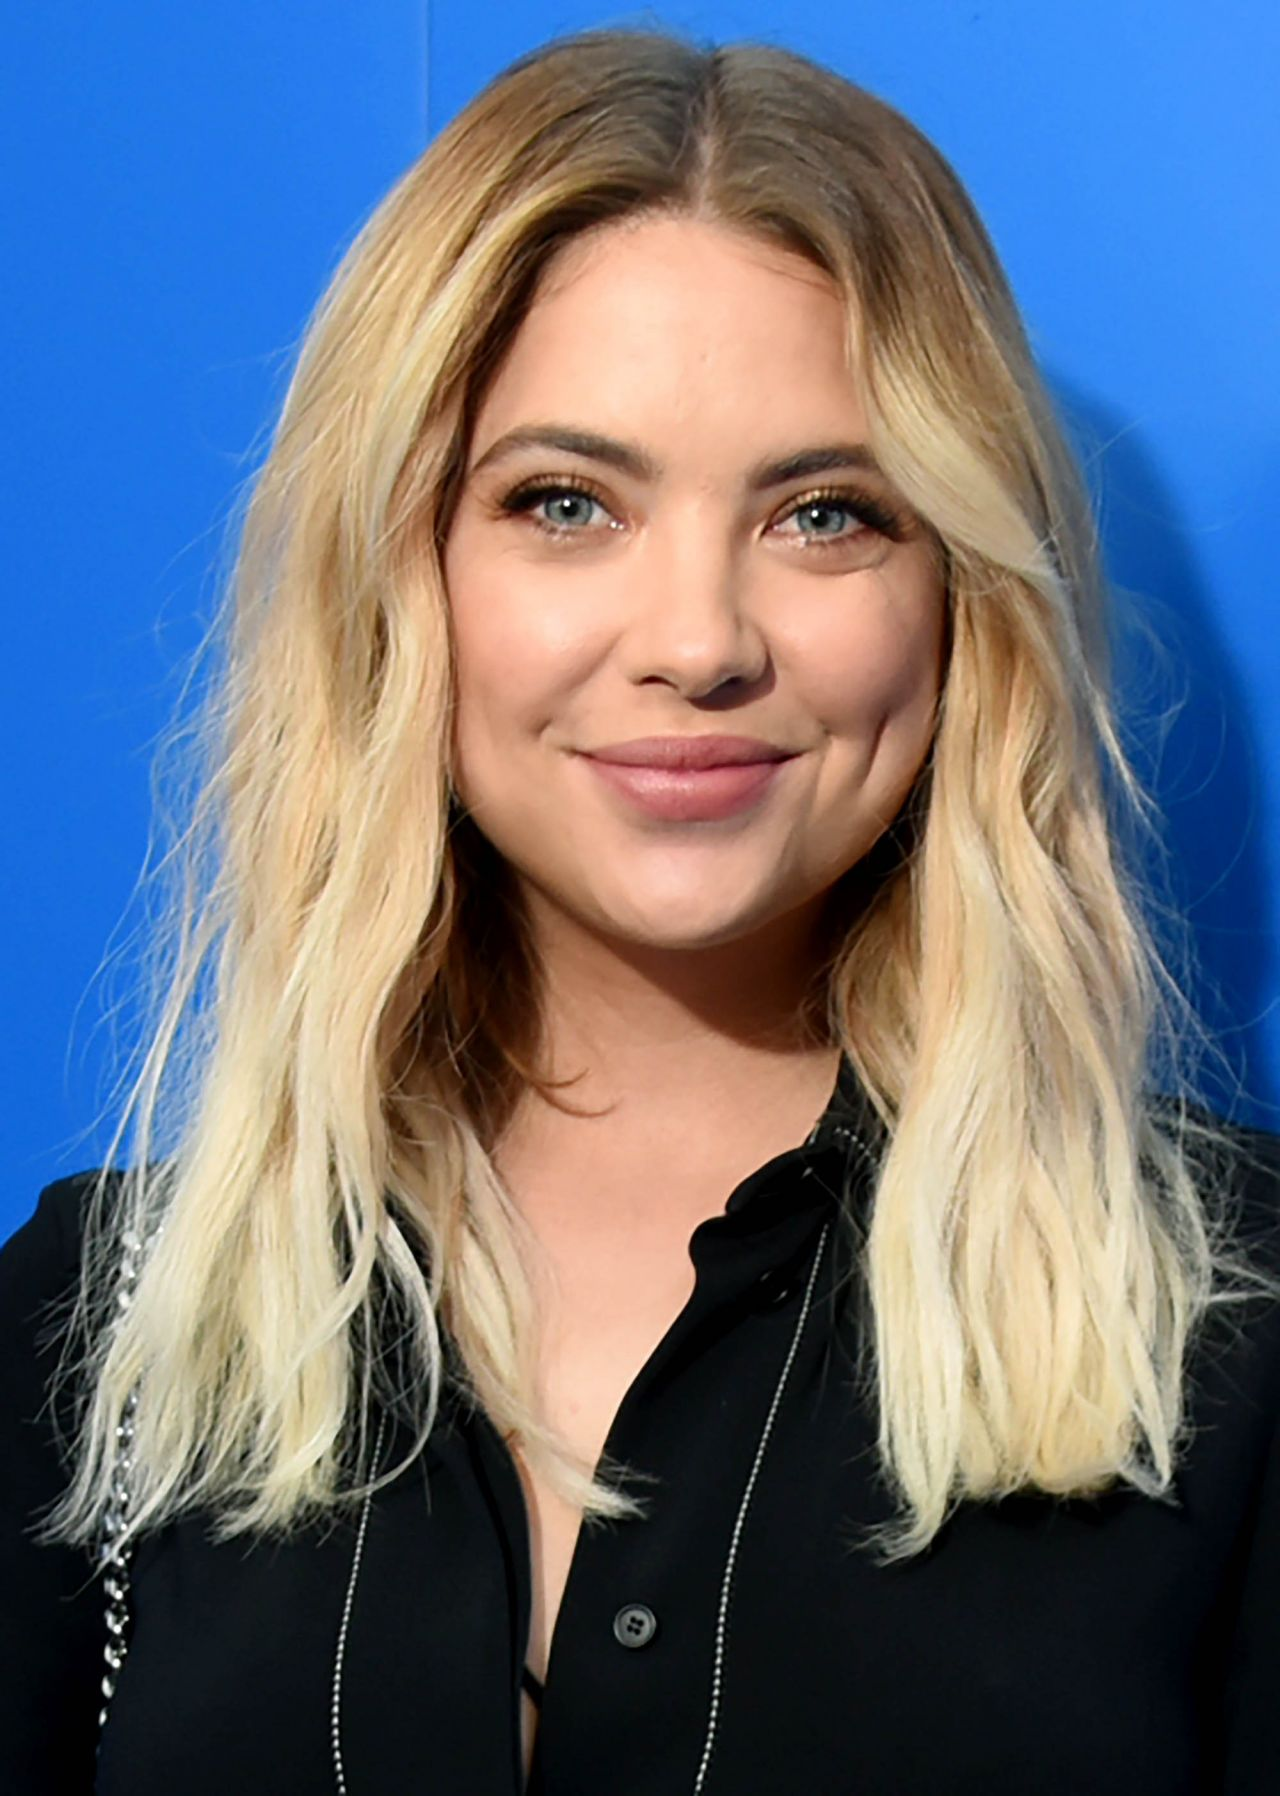 ashley benson - photo #48